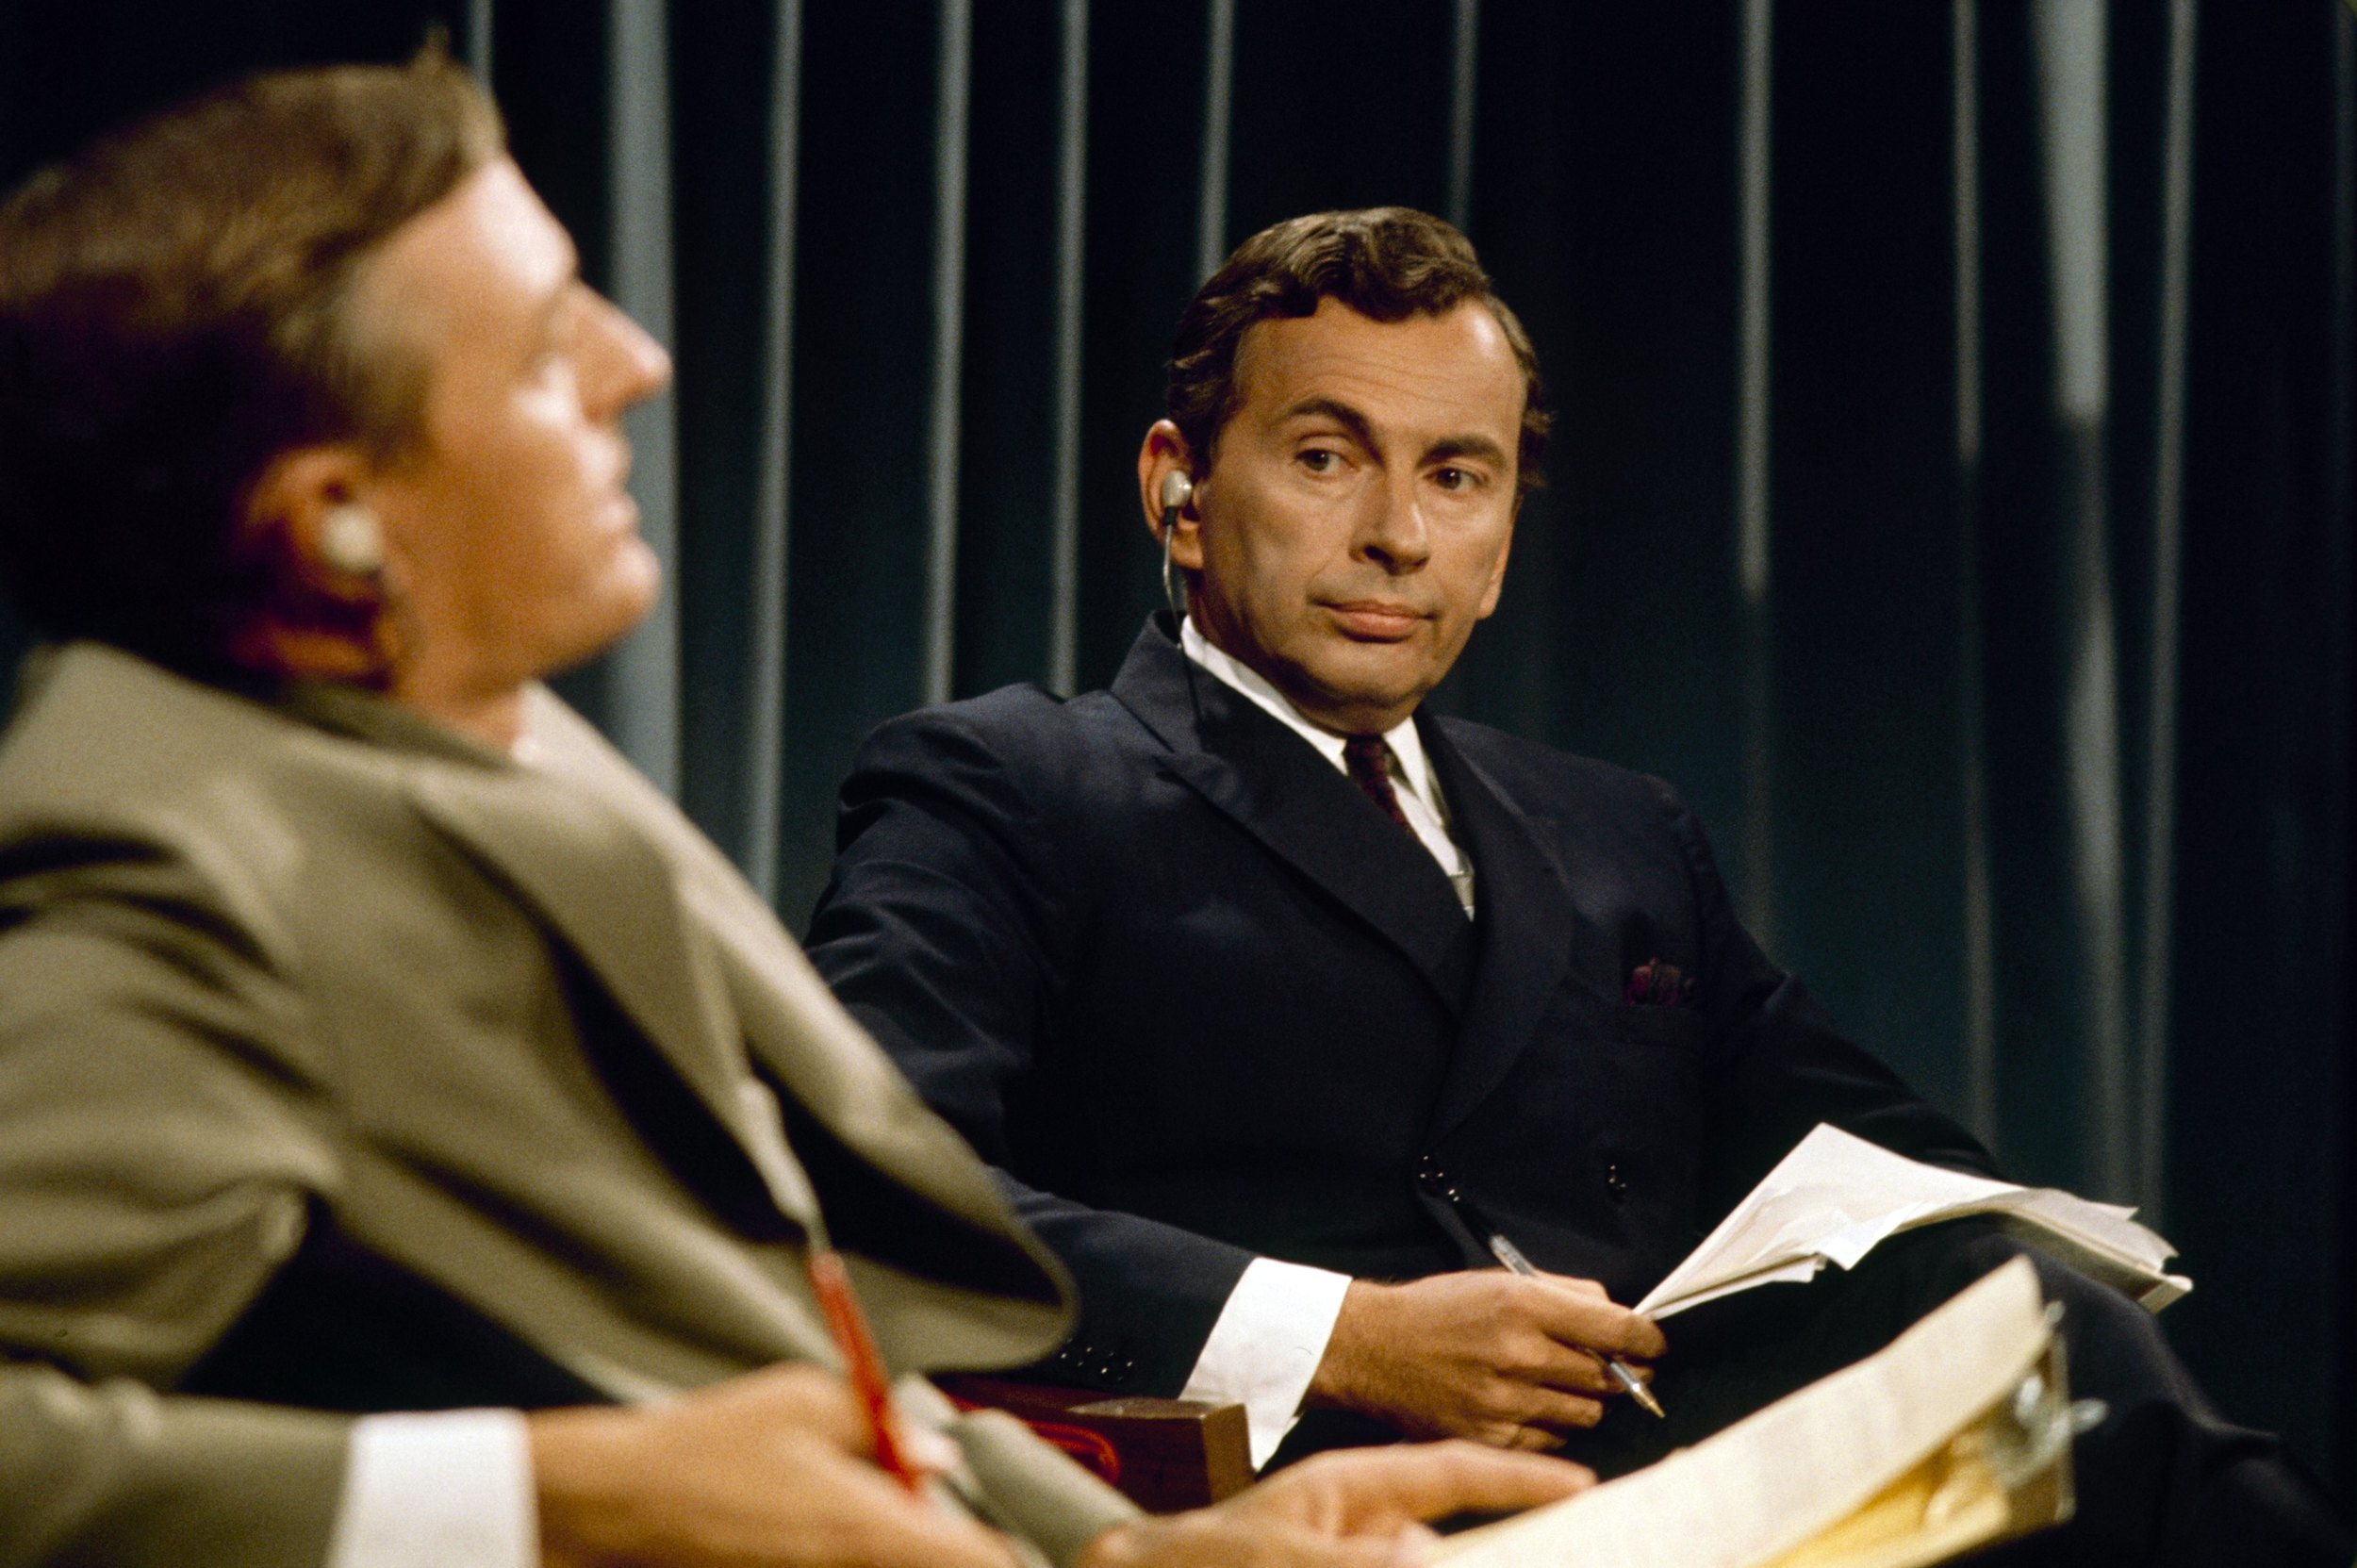 """The on-camera clashes between William F. Buckley Jr. and Gore Vidal are vividly and entertainingly recounted in this fascinating documentary.""   – Joe Leydon, Variety"